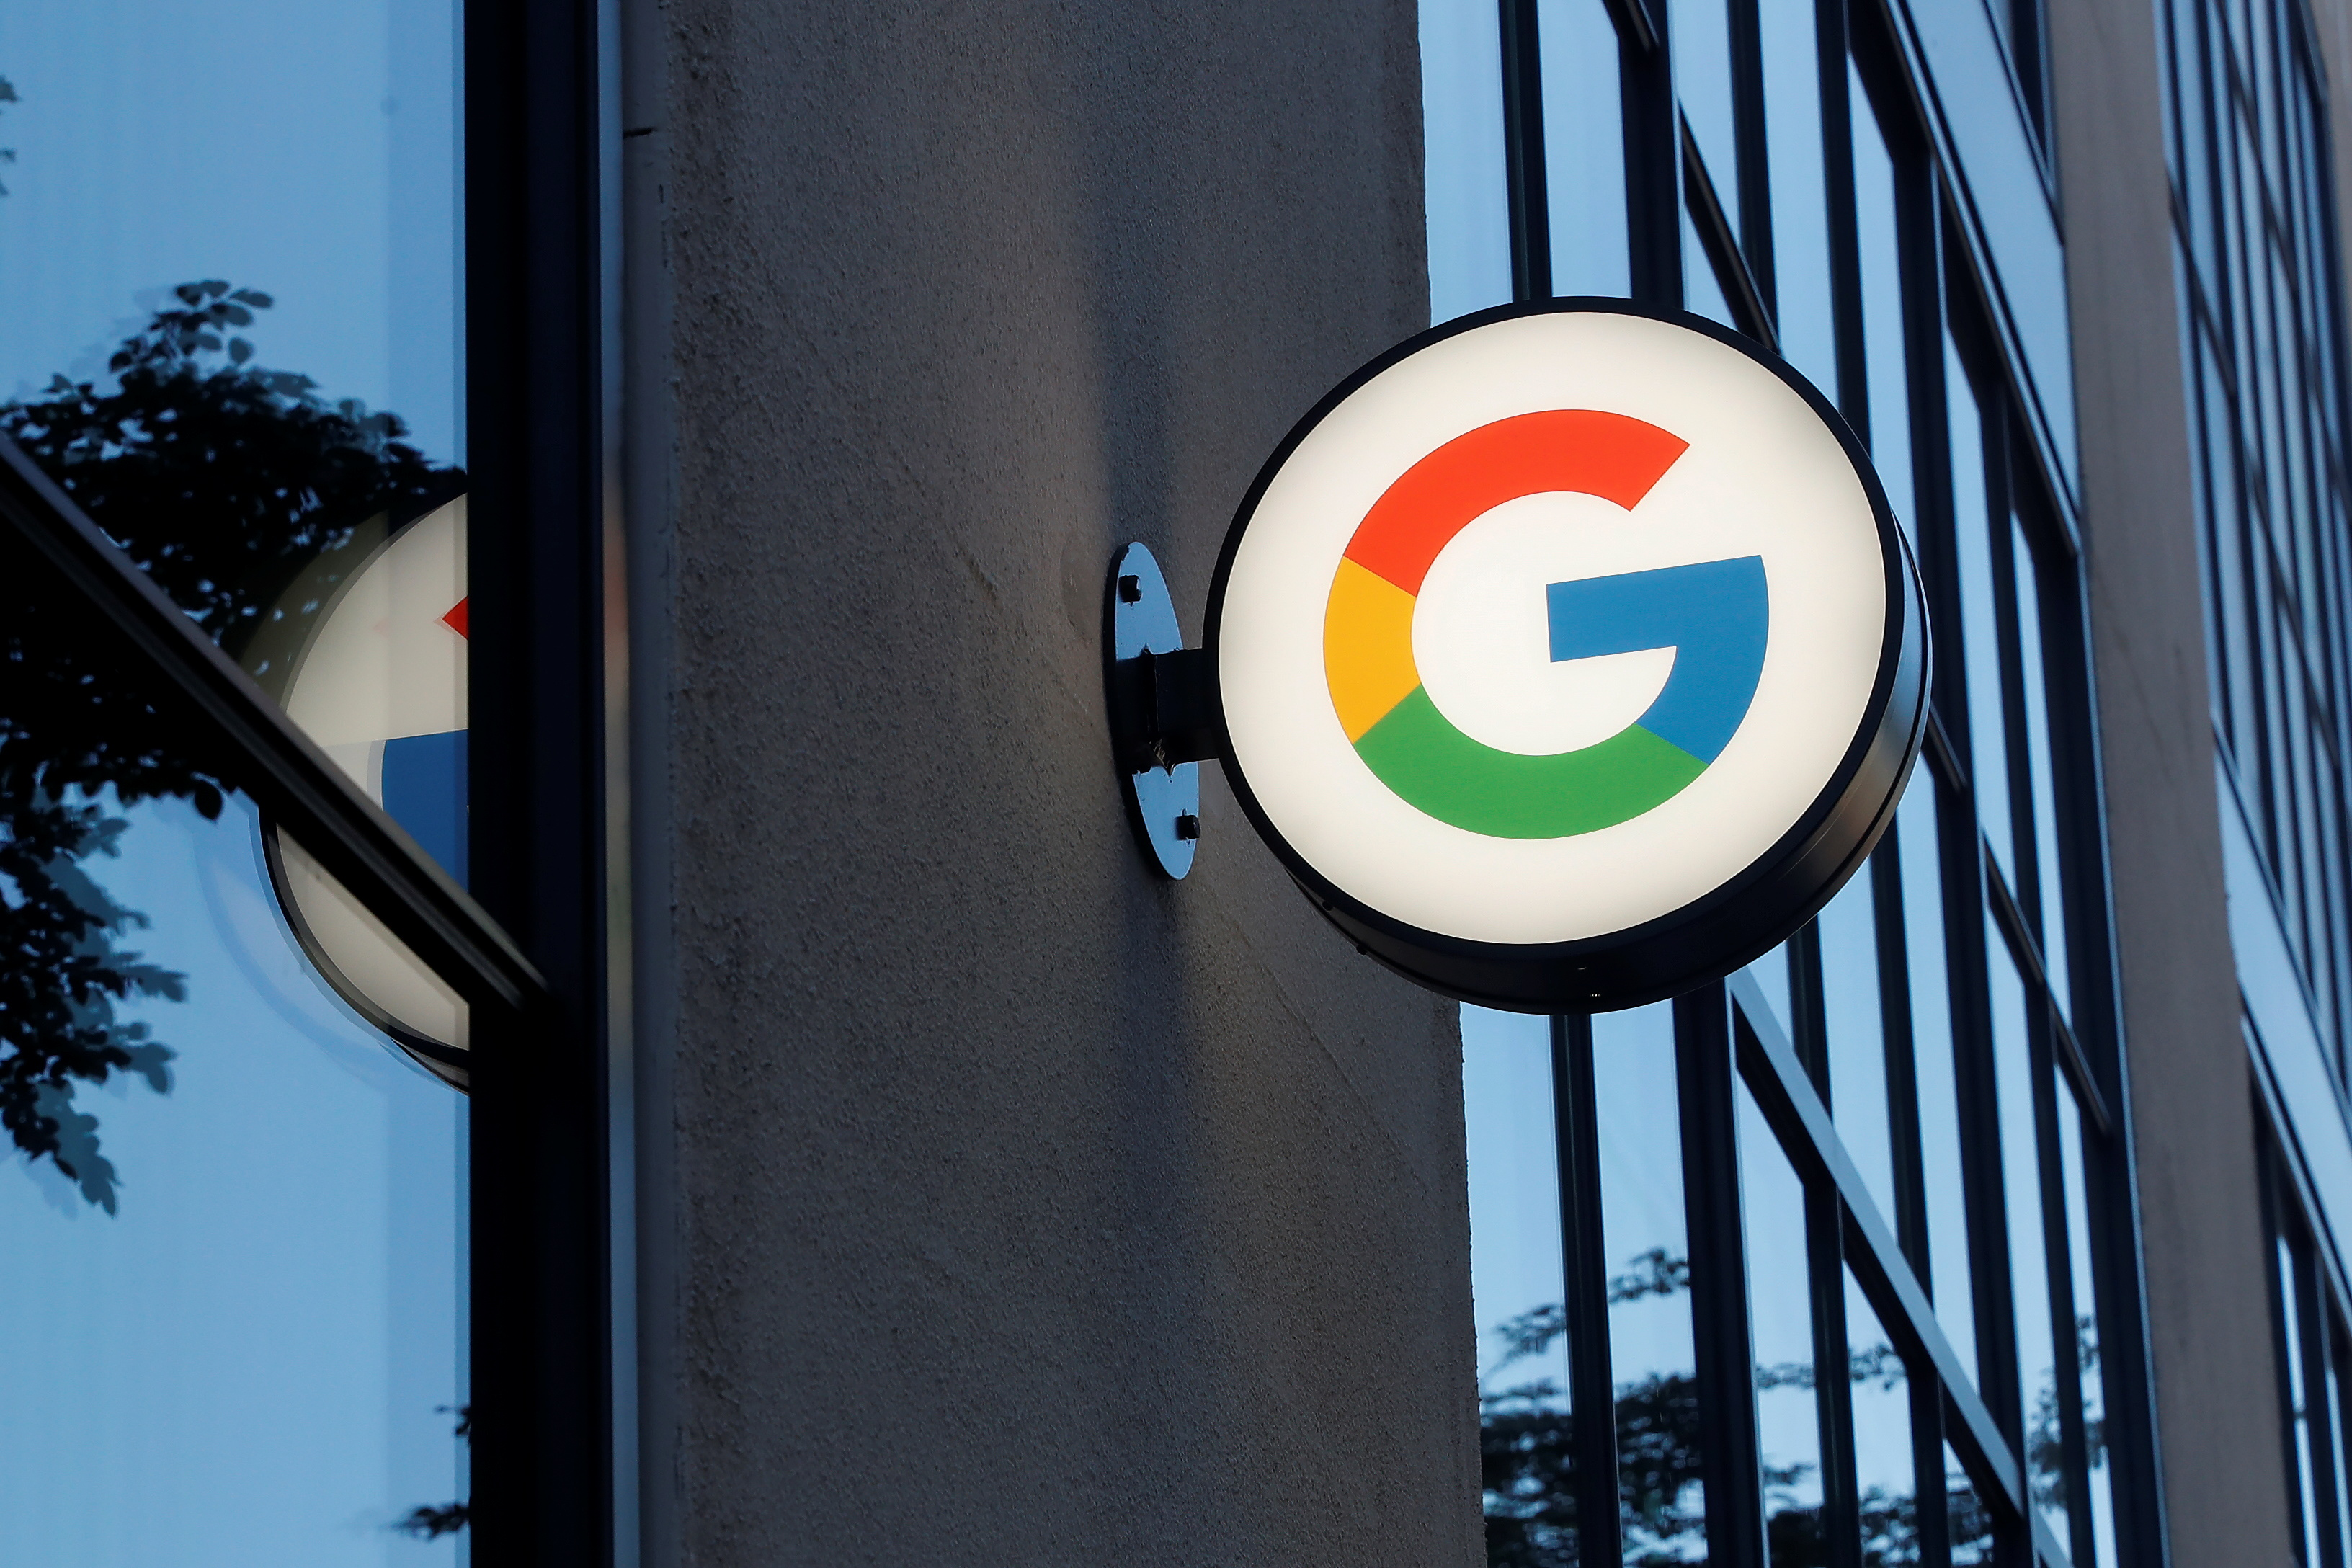 A sign is seen at the entrance to the Google retail store in the Chelsea neighborhood of New York City, U.S., June 17, 2021. REUTERS/Shannon Stapleton